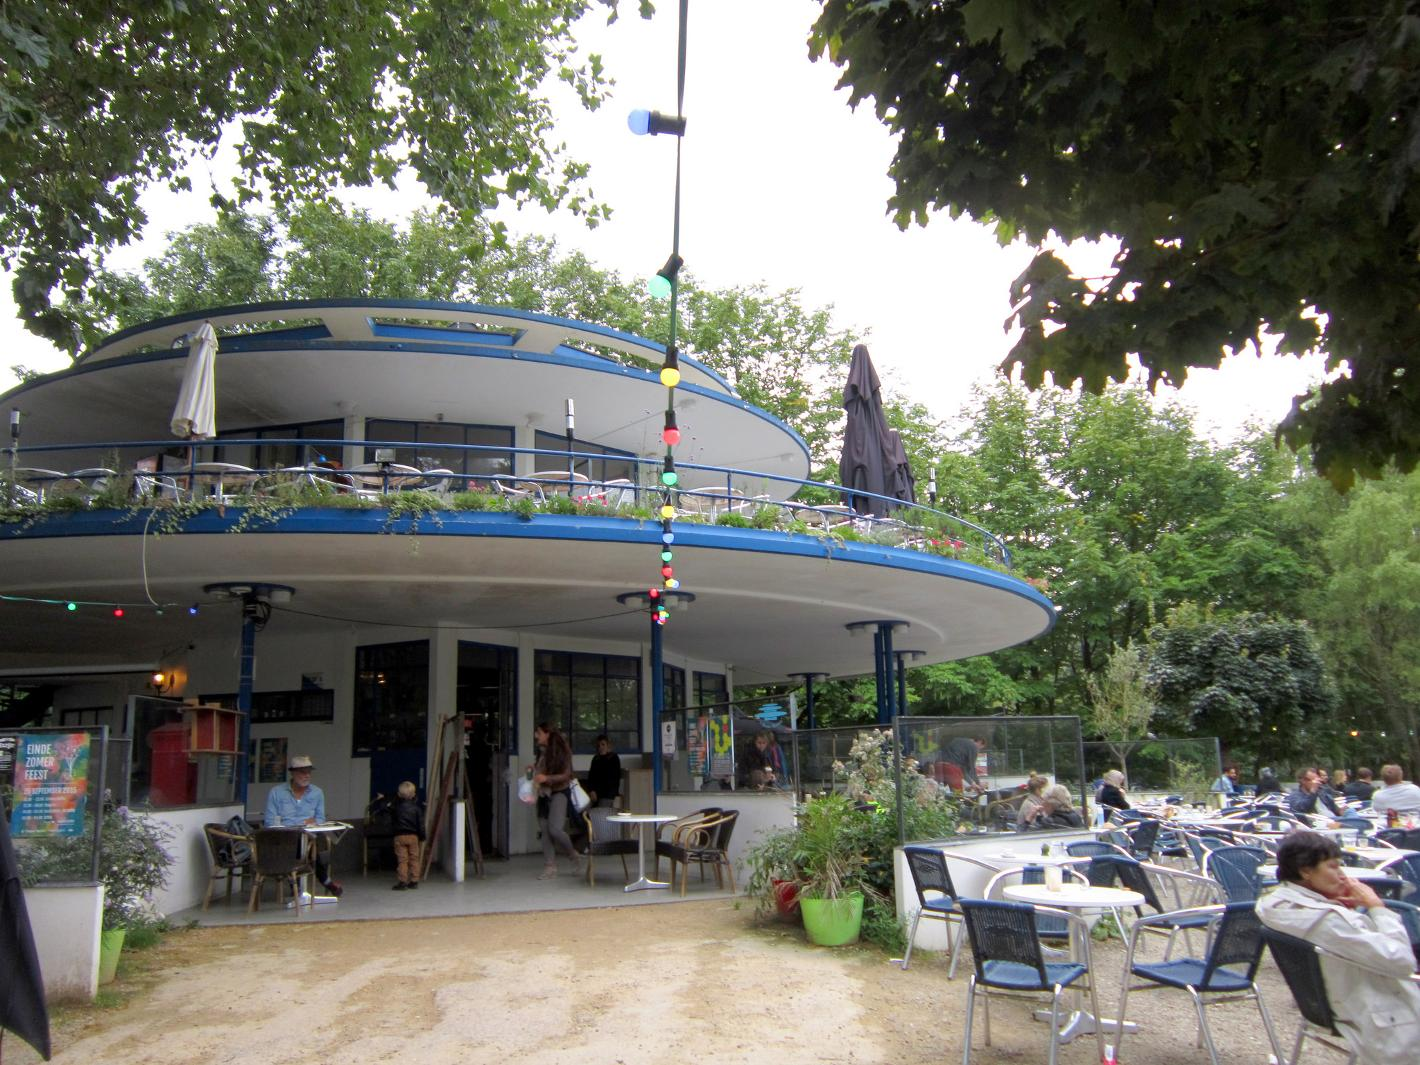 Photo 't Blauwe Theehuis in Amsterdam, Eat & drink, Coffee, Lunch, Drink, Activity, Event - #3